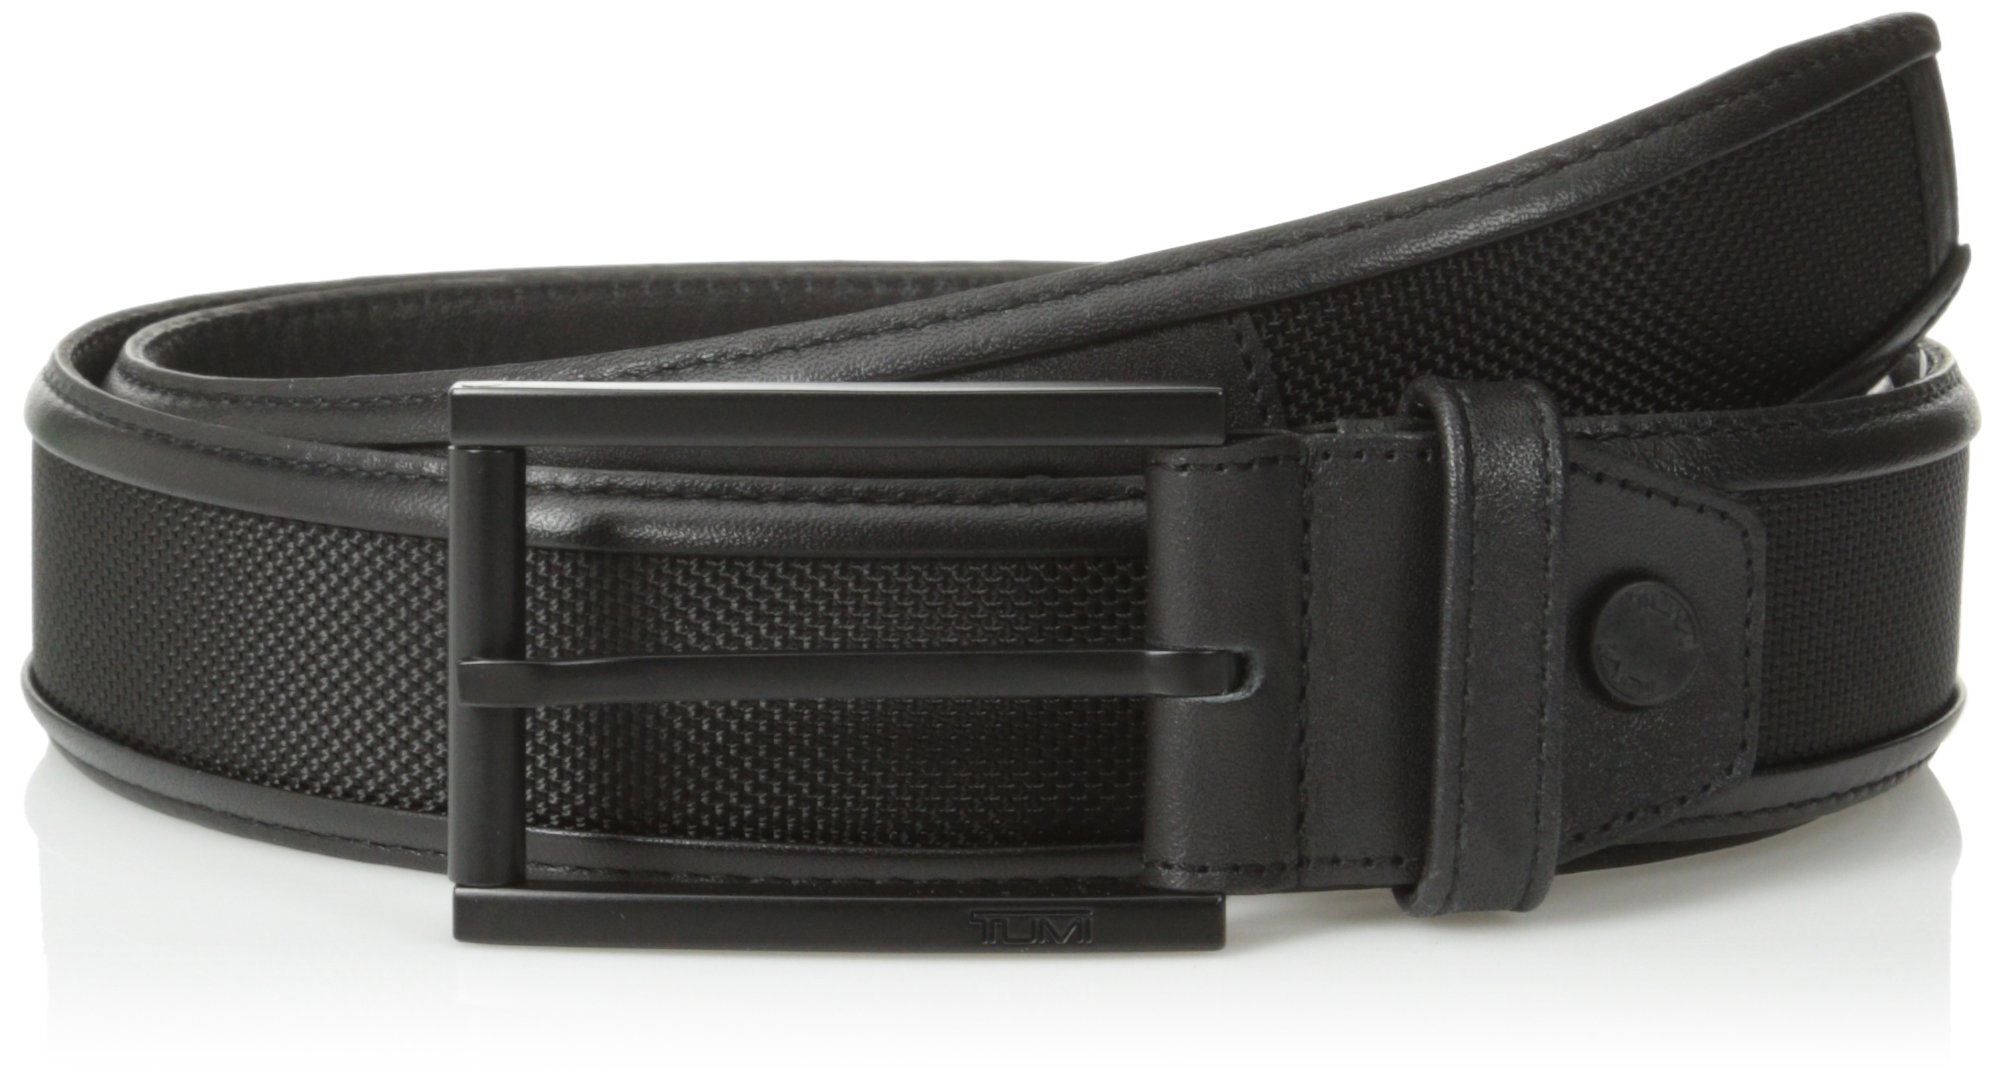 TUMI Men's Ballistic Belt, Black, 36